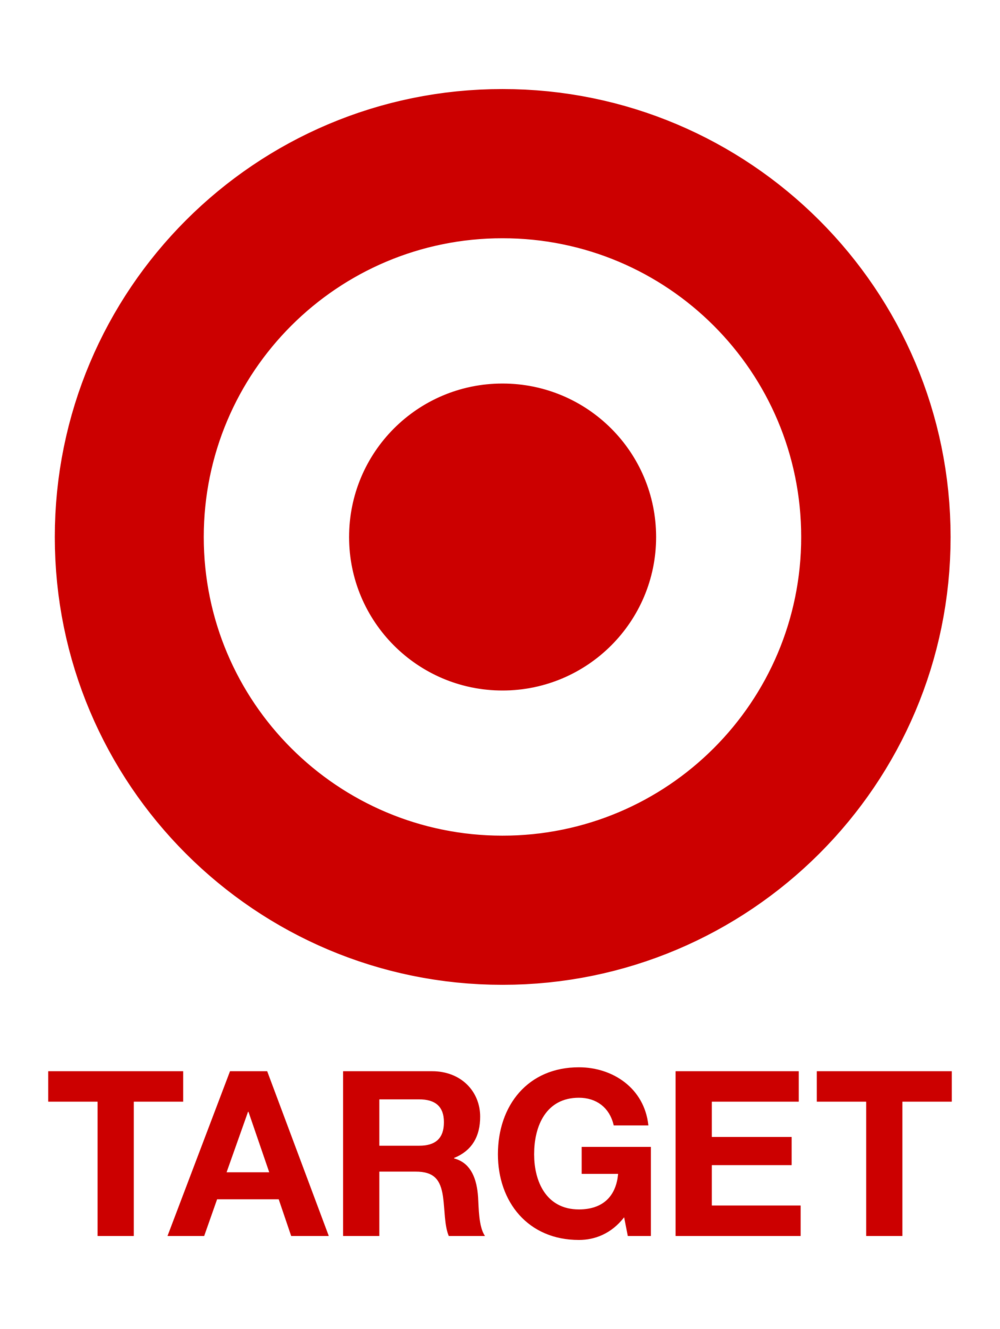 Target Logo w text (OFFICIAL).png